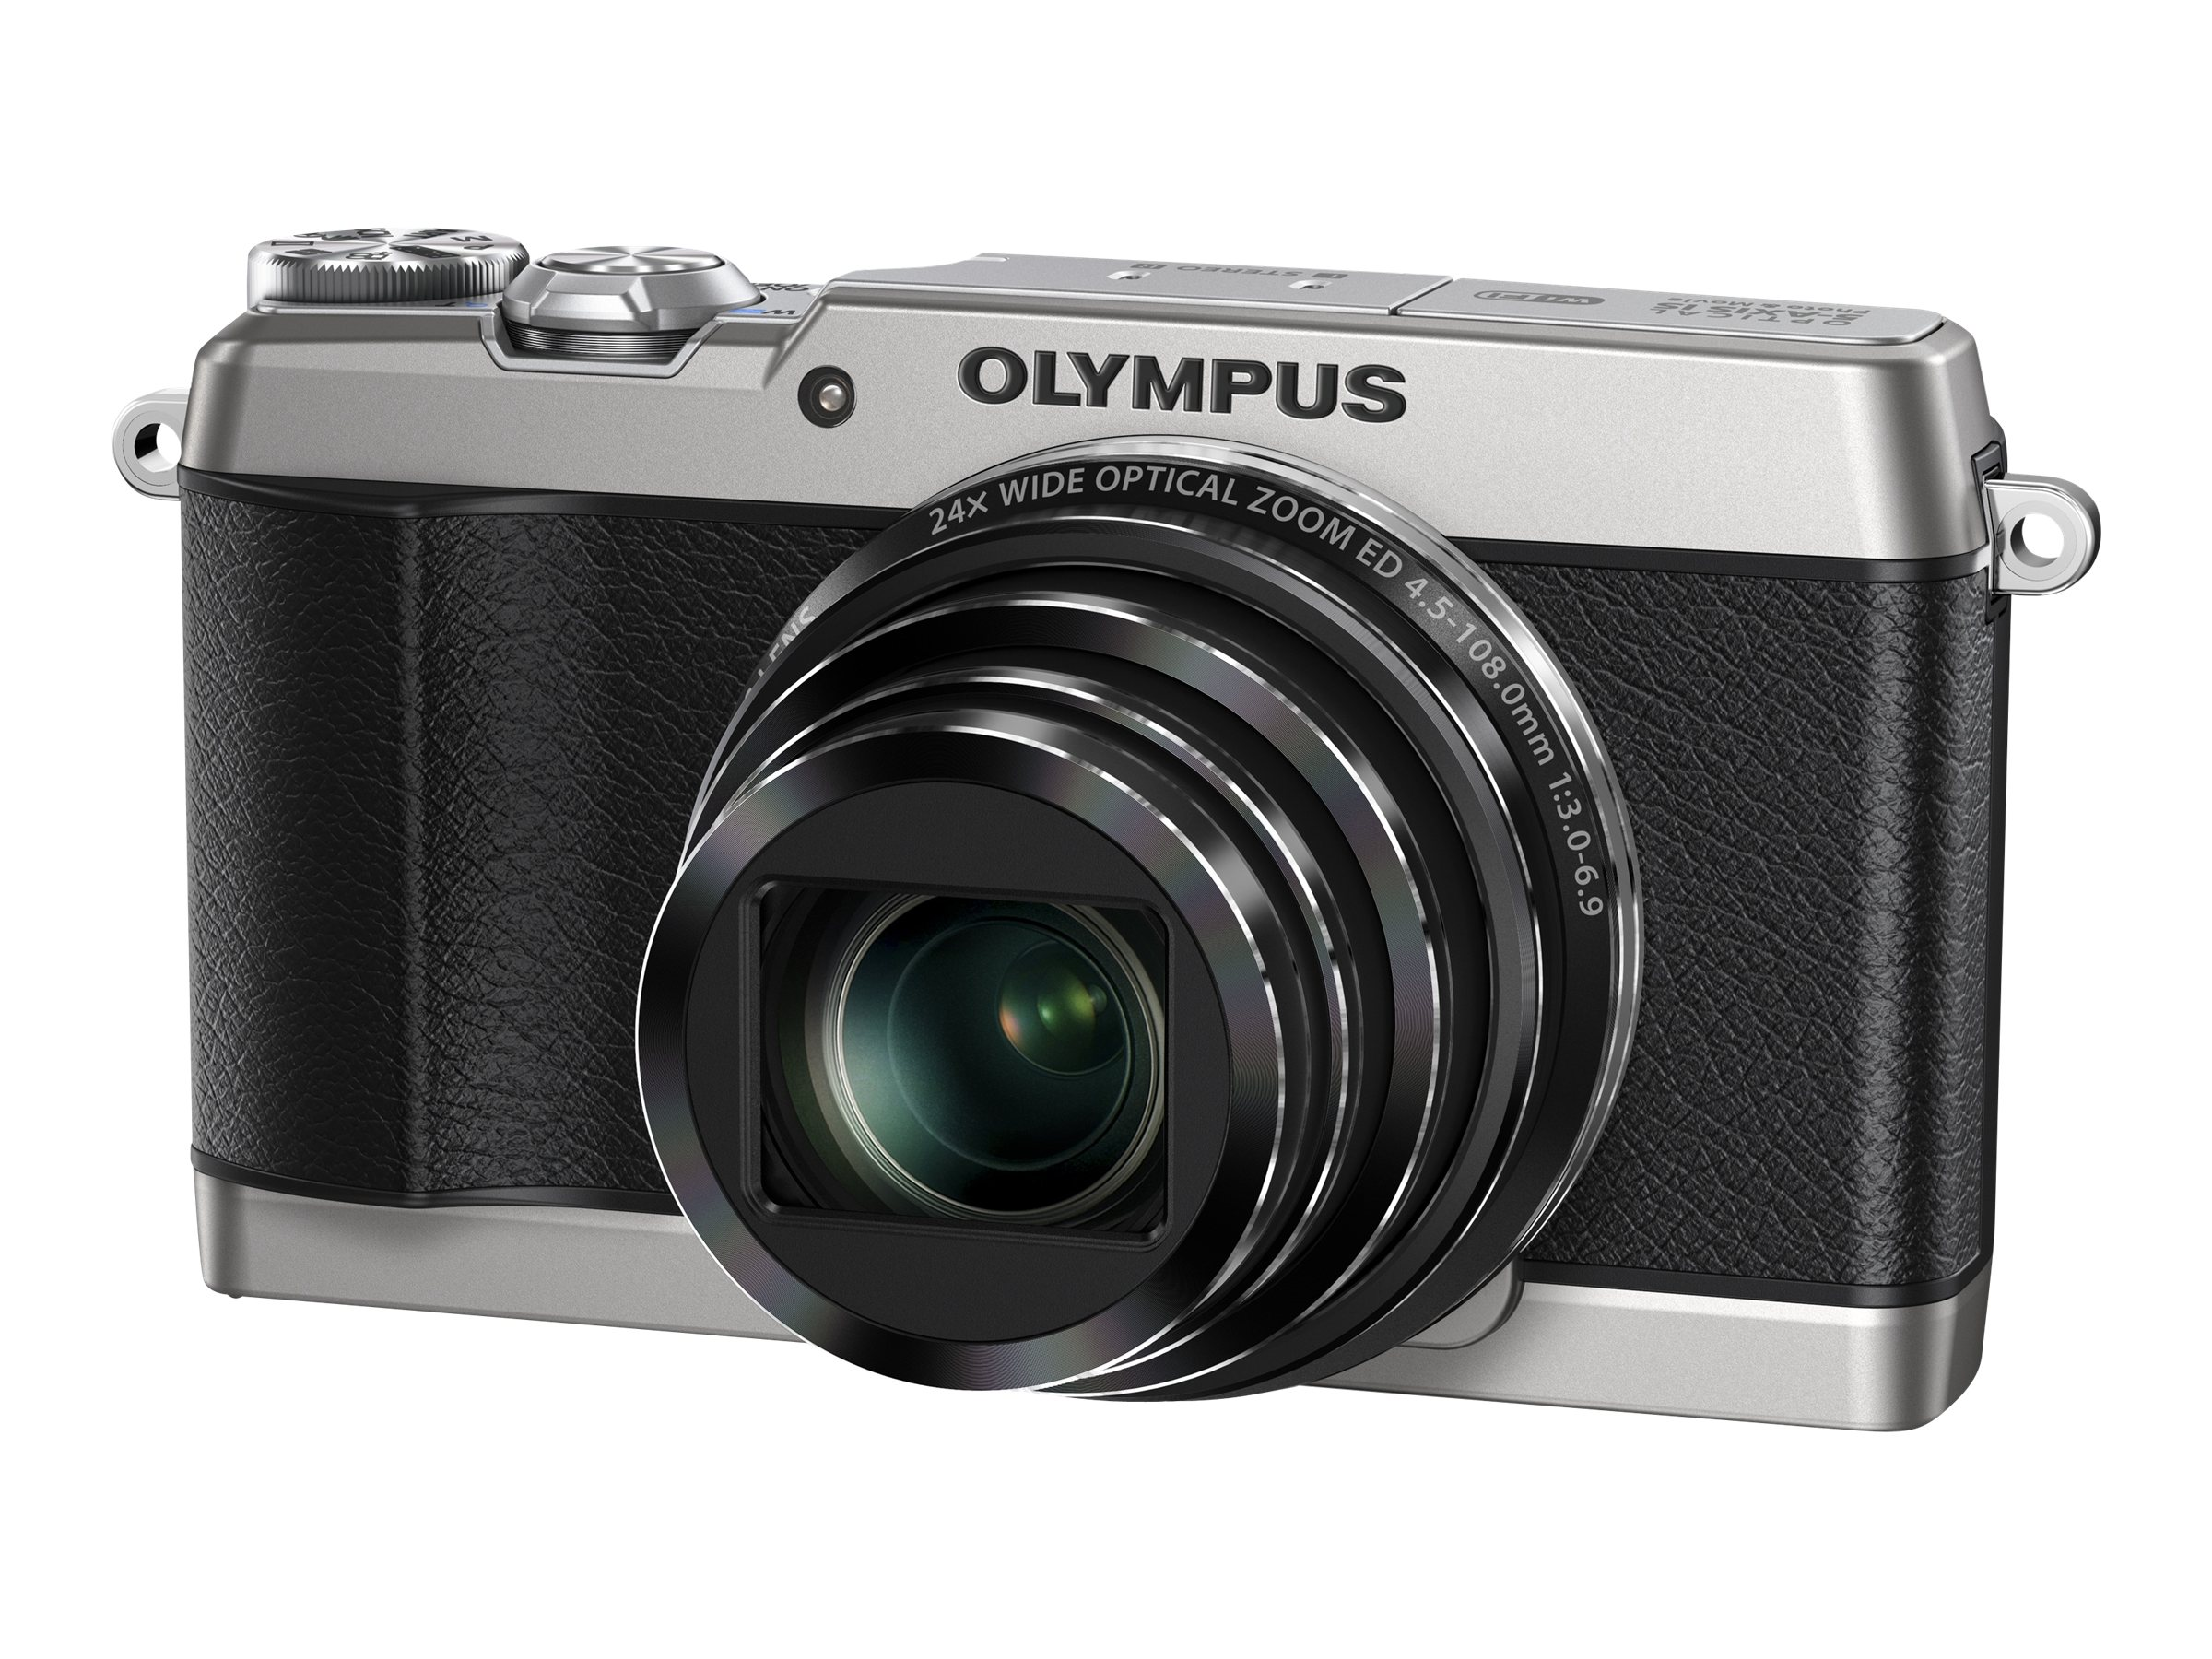 Olympus Stylus SH-1 Digital Camera, 16MP, Silver, V107080SU000, 17051699, Cameras - Digital - Point & Shoot